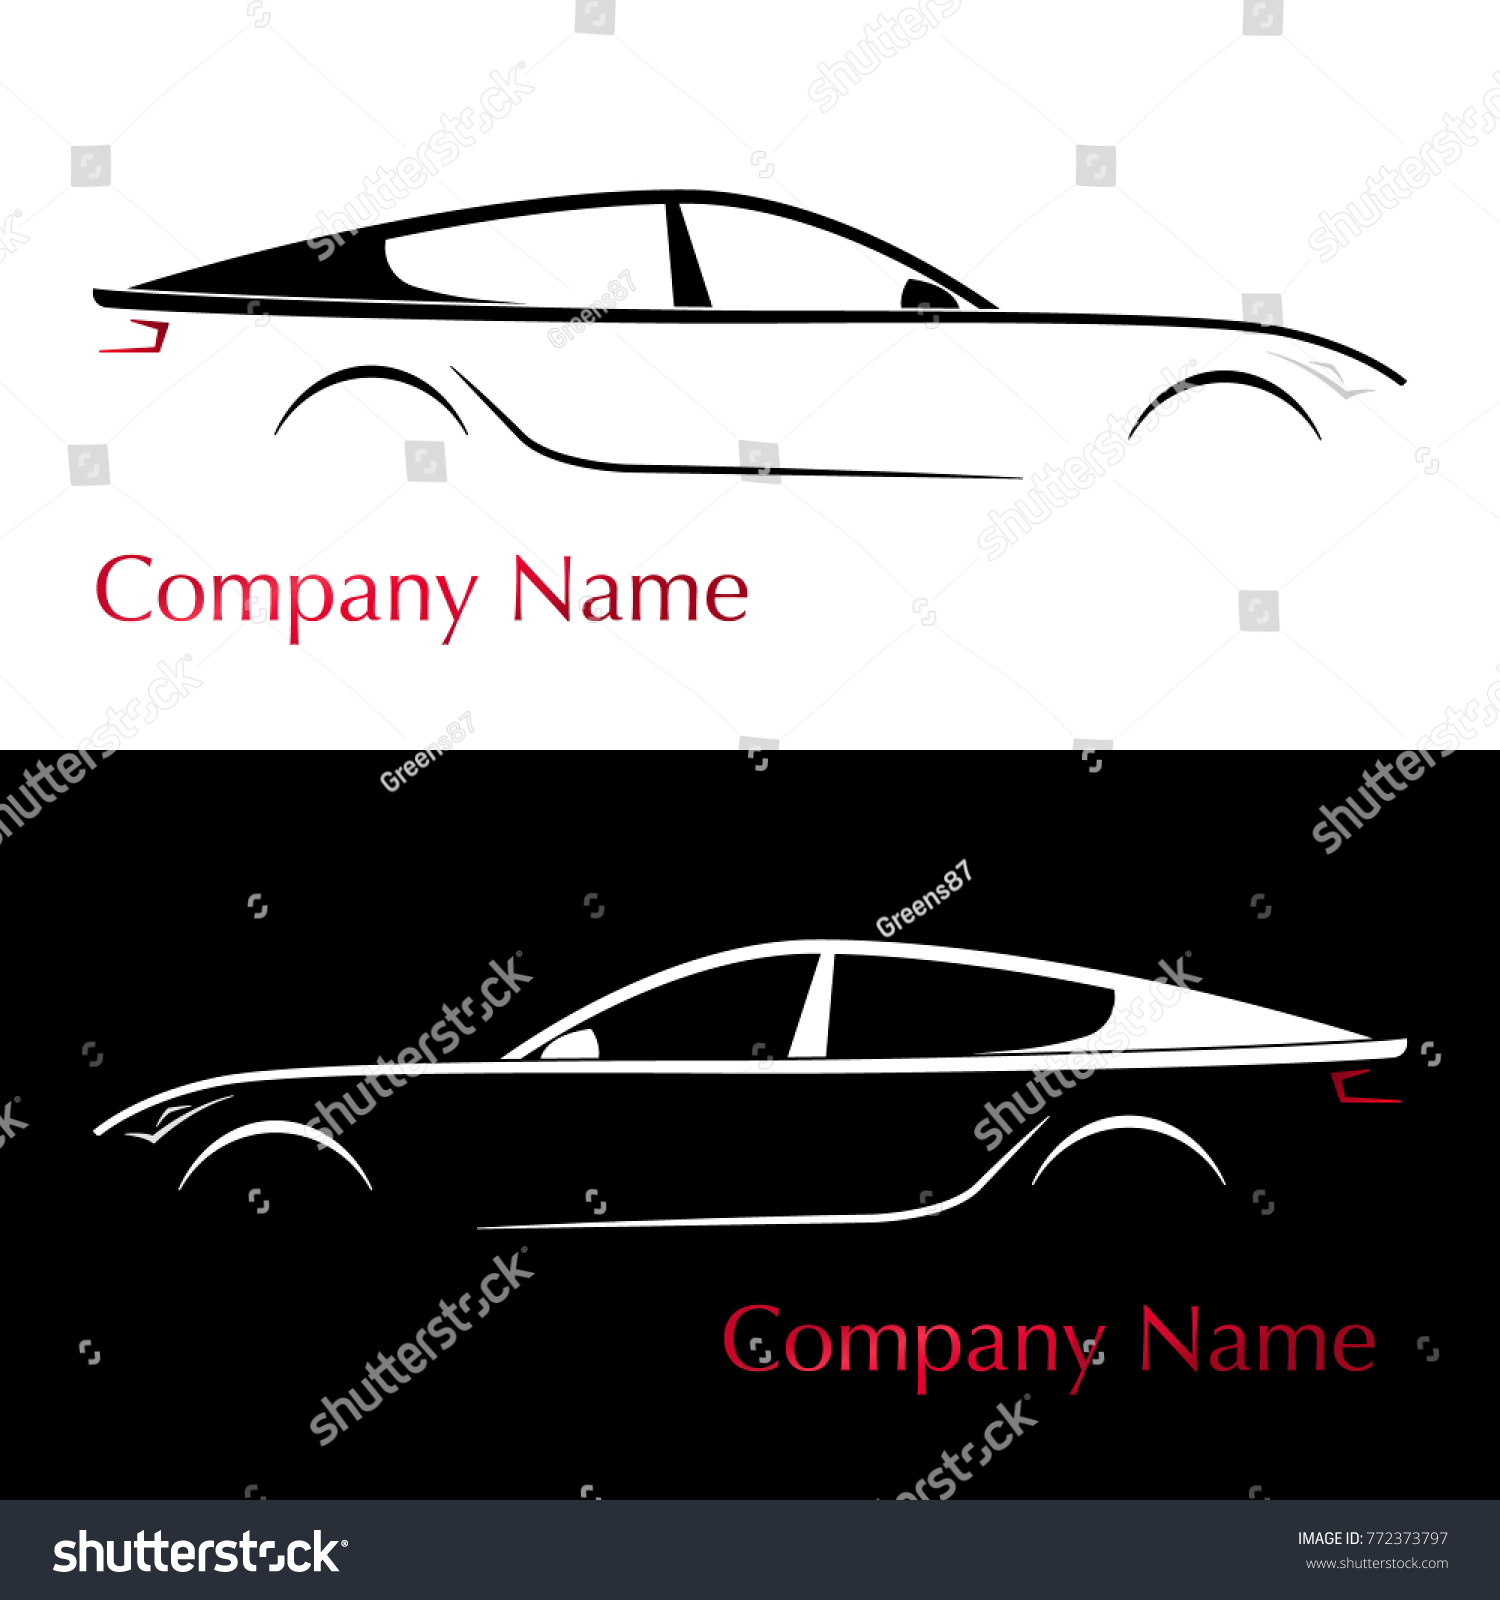 Business Card Auto Company Silhouette Car Stock Vector Royalty Free